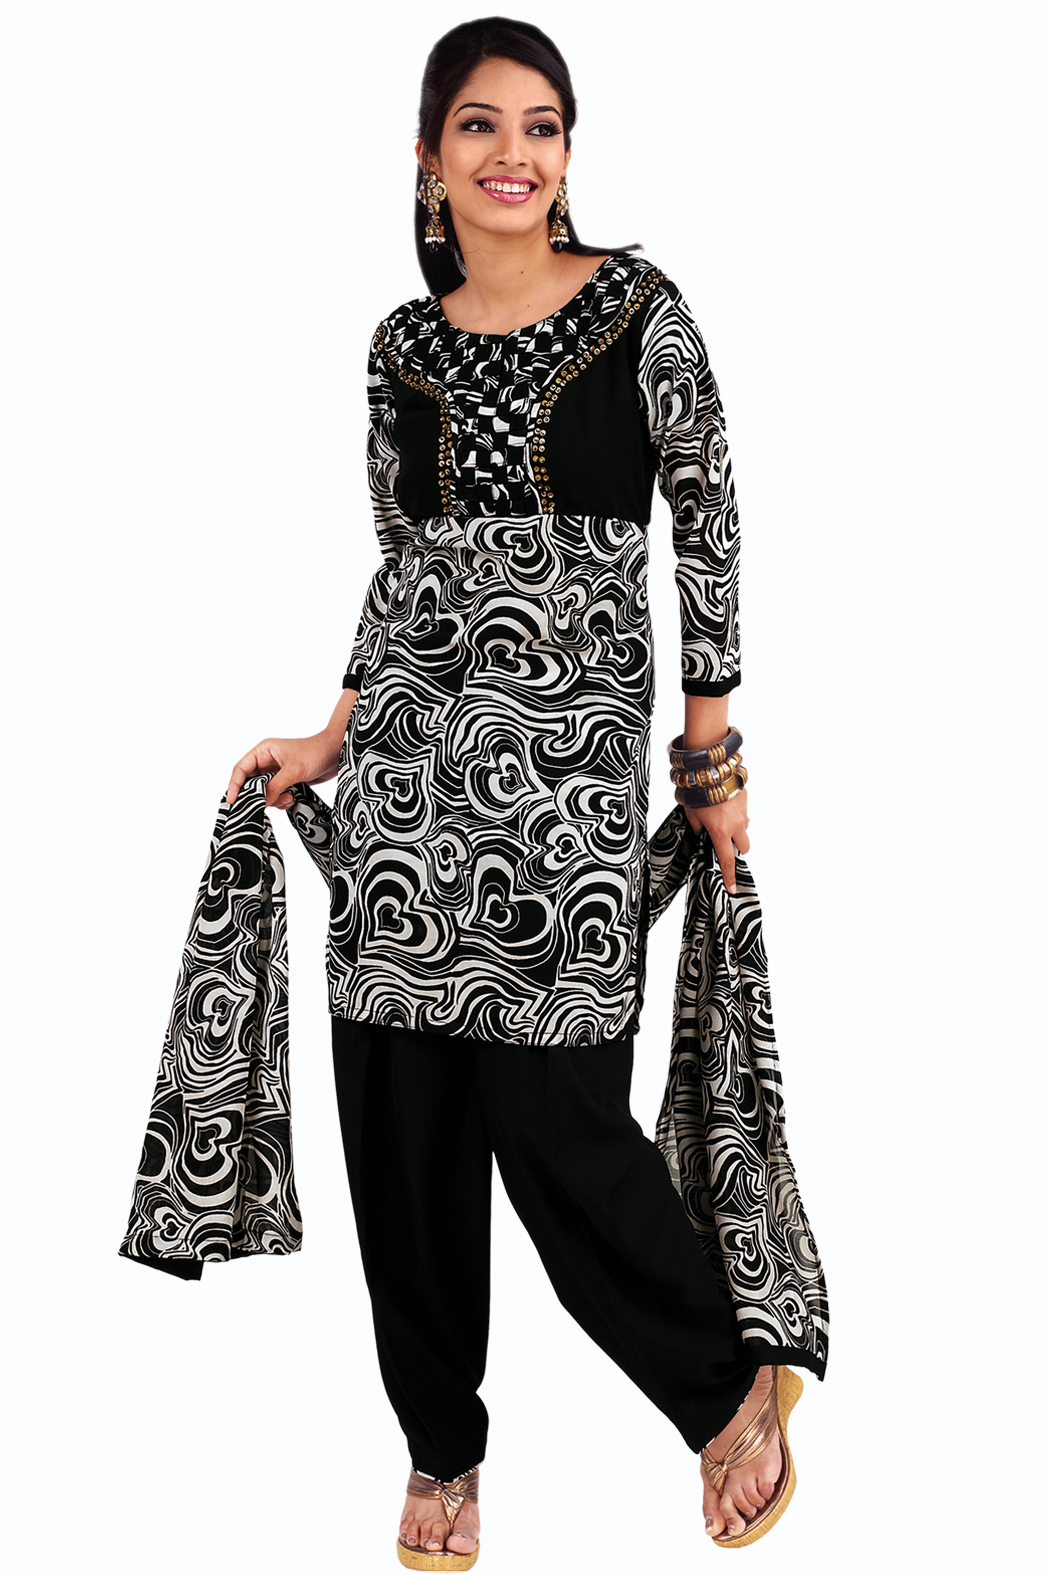 Kurta pajama for men girls women designs style 2013 14 kameez shalwar images picutres photos Fashion style in pakistan 2013